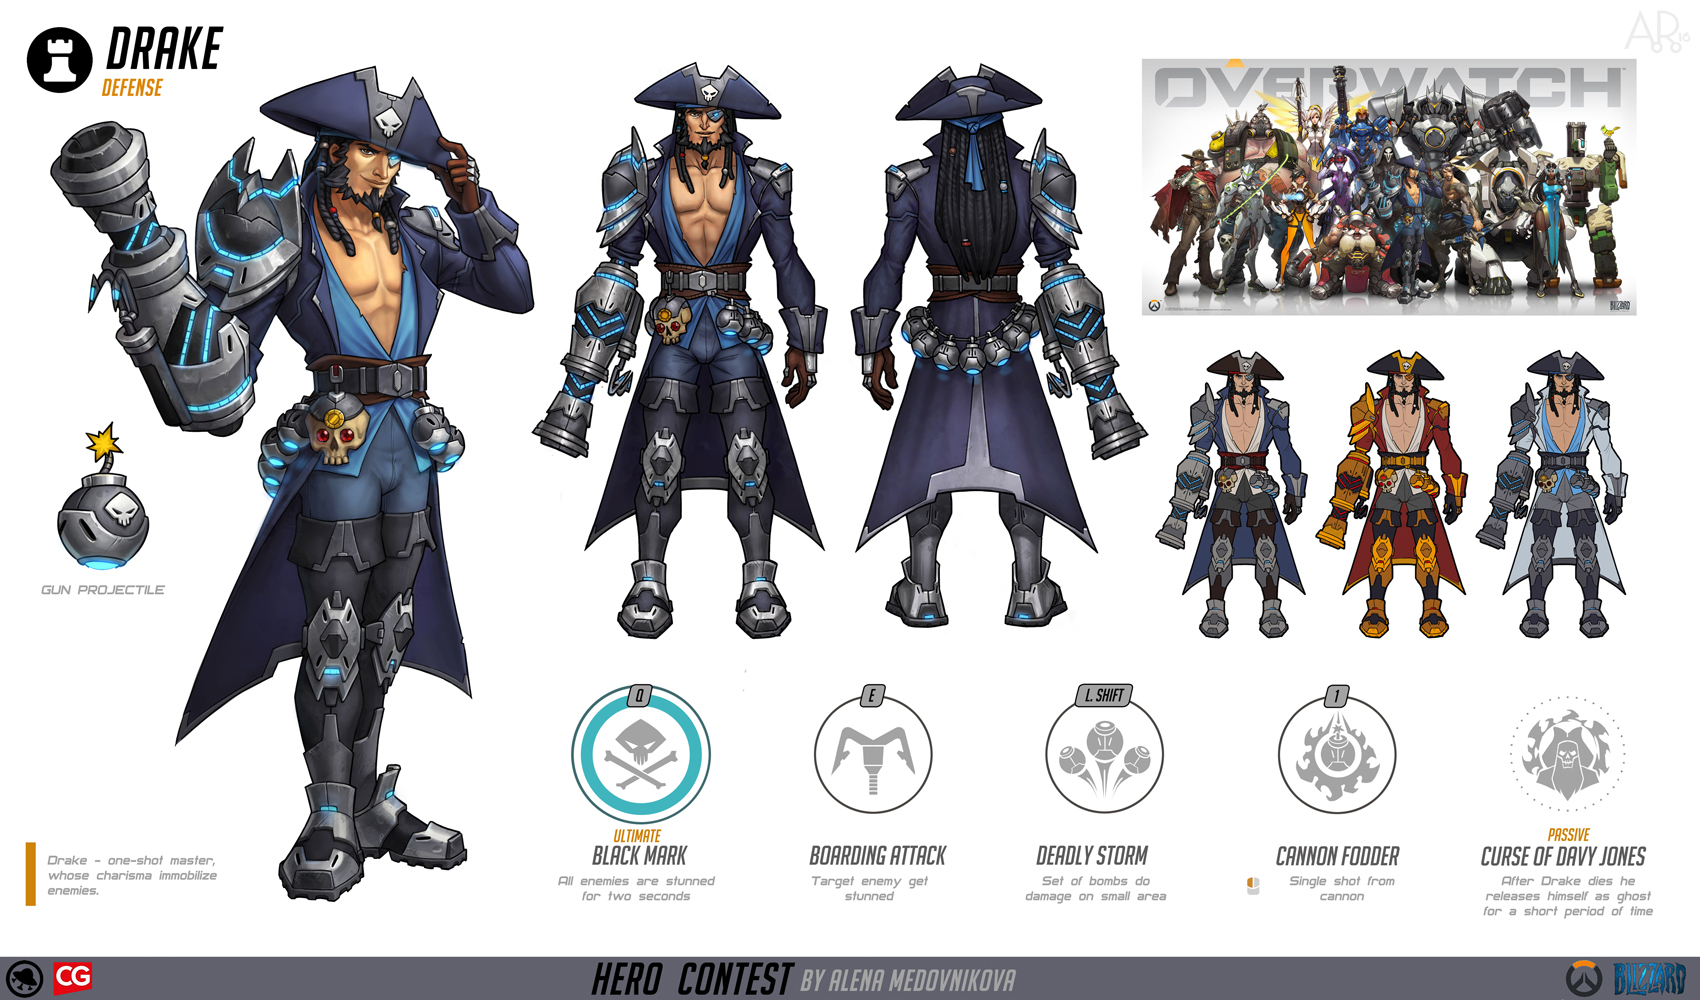 Overwatch Character Design Concept Art : Drake for overwatch concept by anhel on deviantart